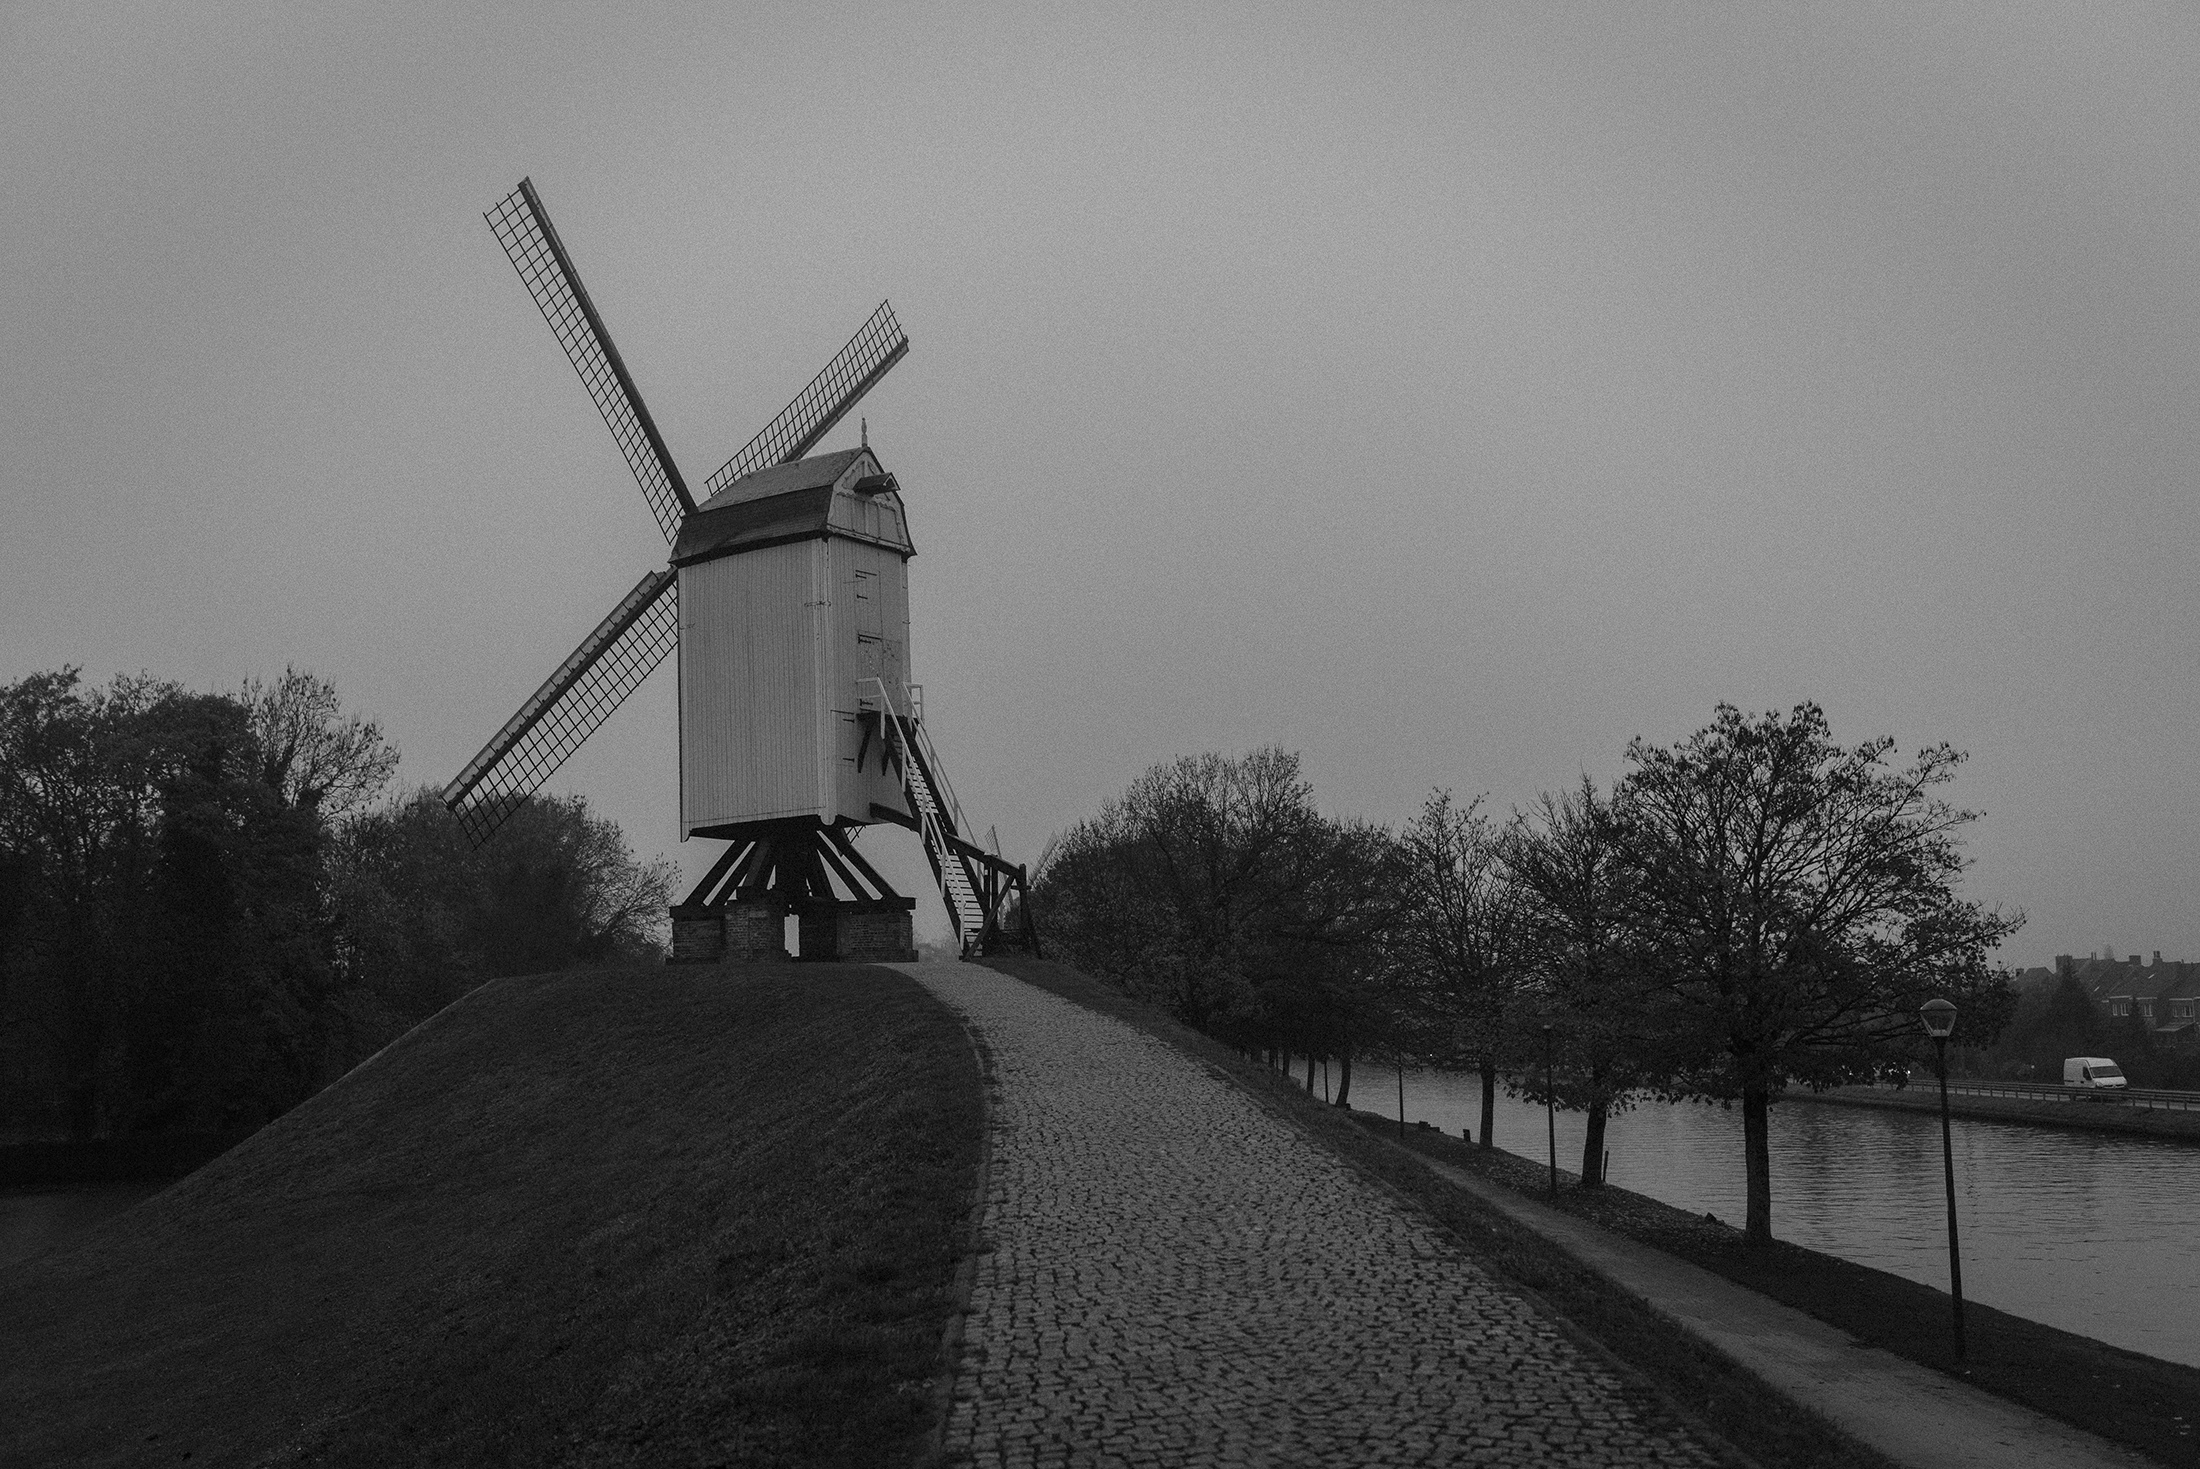 windmill  Bruges Belgium - black and white photograph- Patricia Martins-Yellowish blog 2019